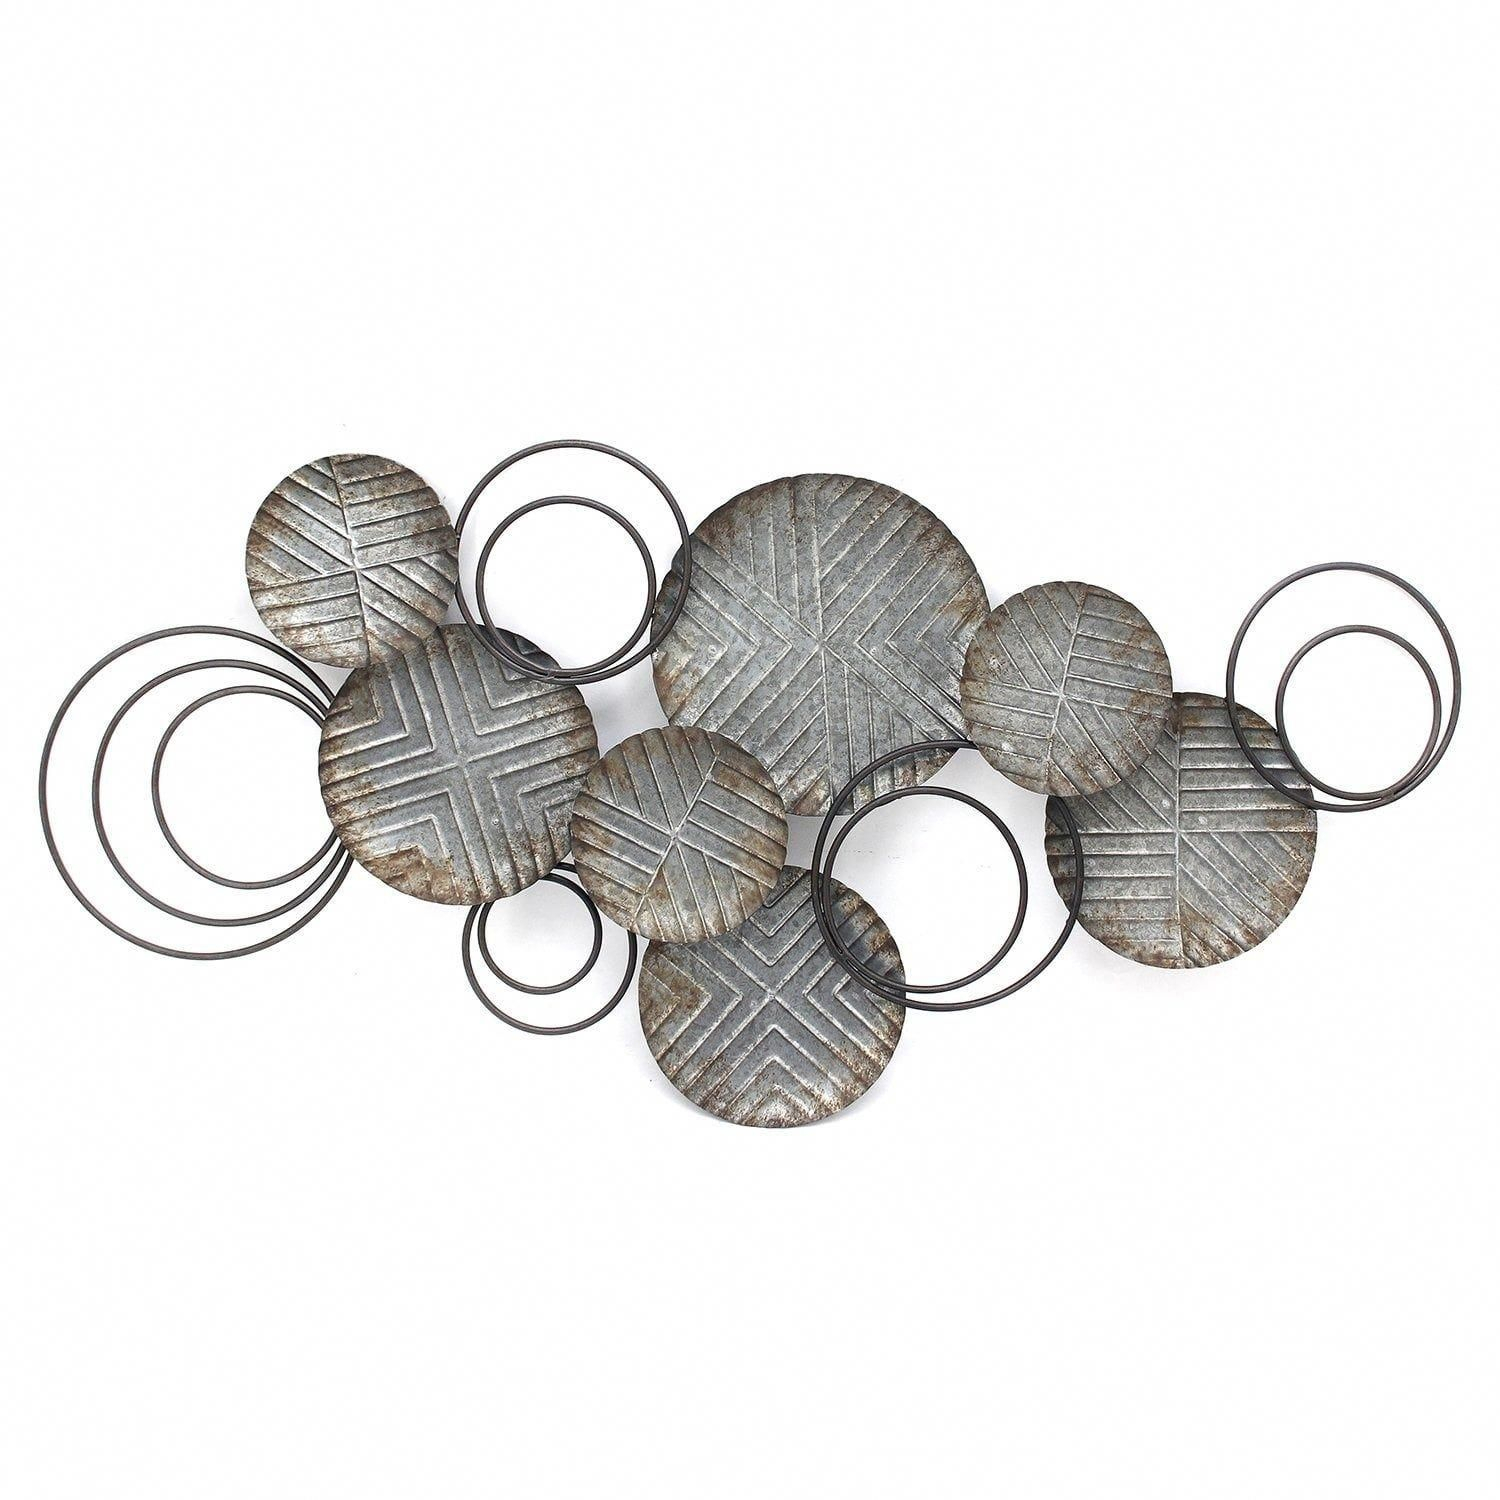 Stratton Home Decor Galvanized Plates Wall Decor, Silver Pertaining To Scattered Metal Italian Plates Wall Decor (View 20 of 30)